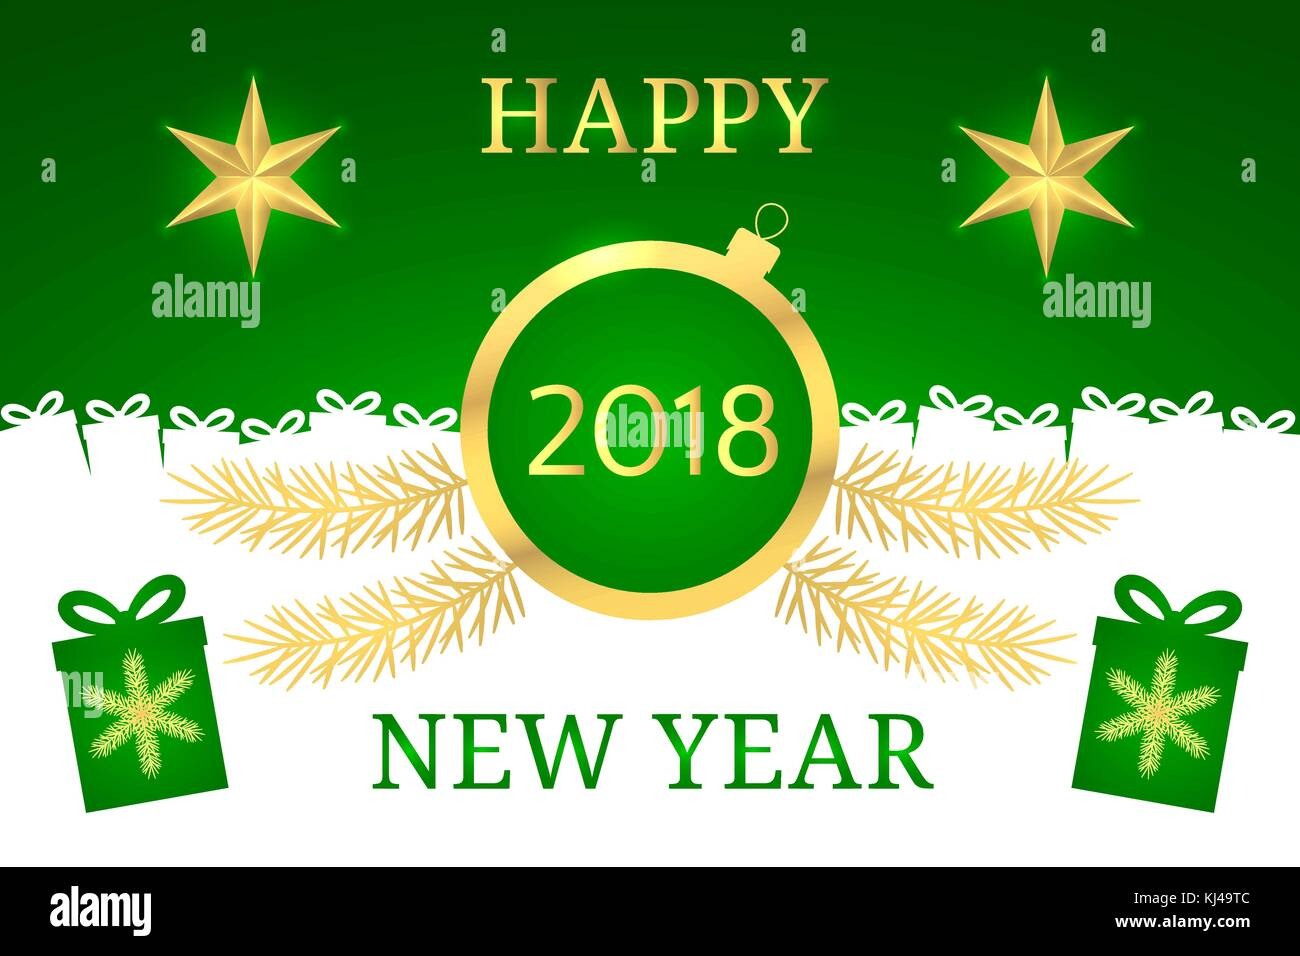 Happy New Year 2018 Vector Banner With New Year Greeting In Golden